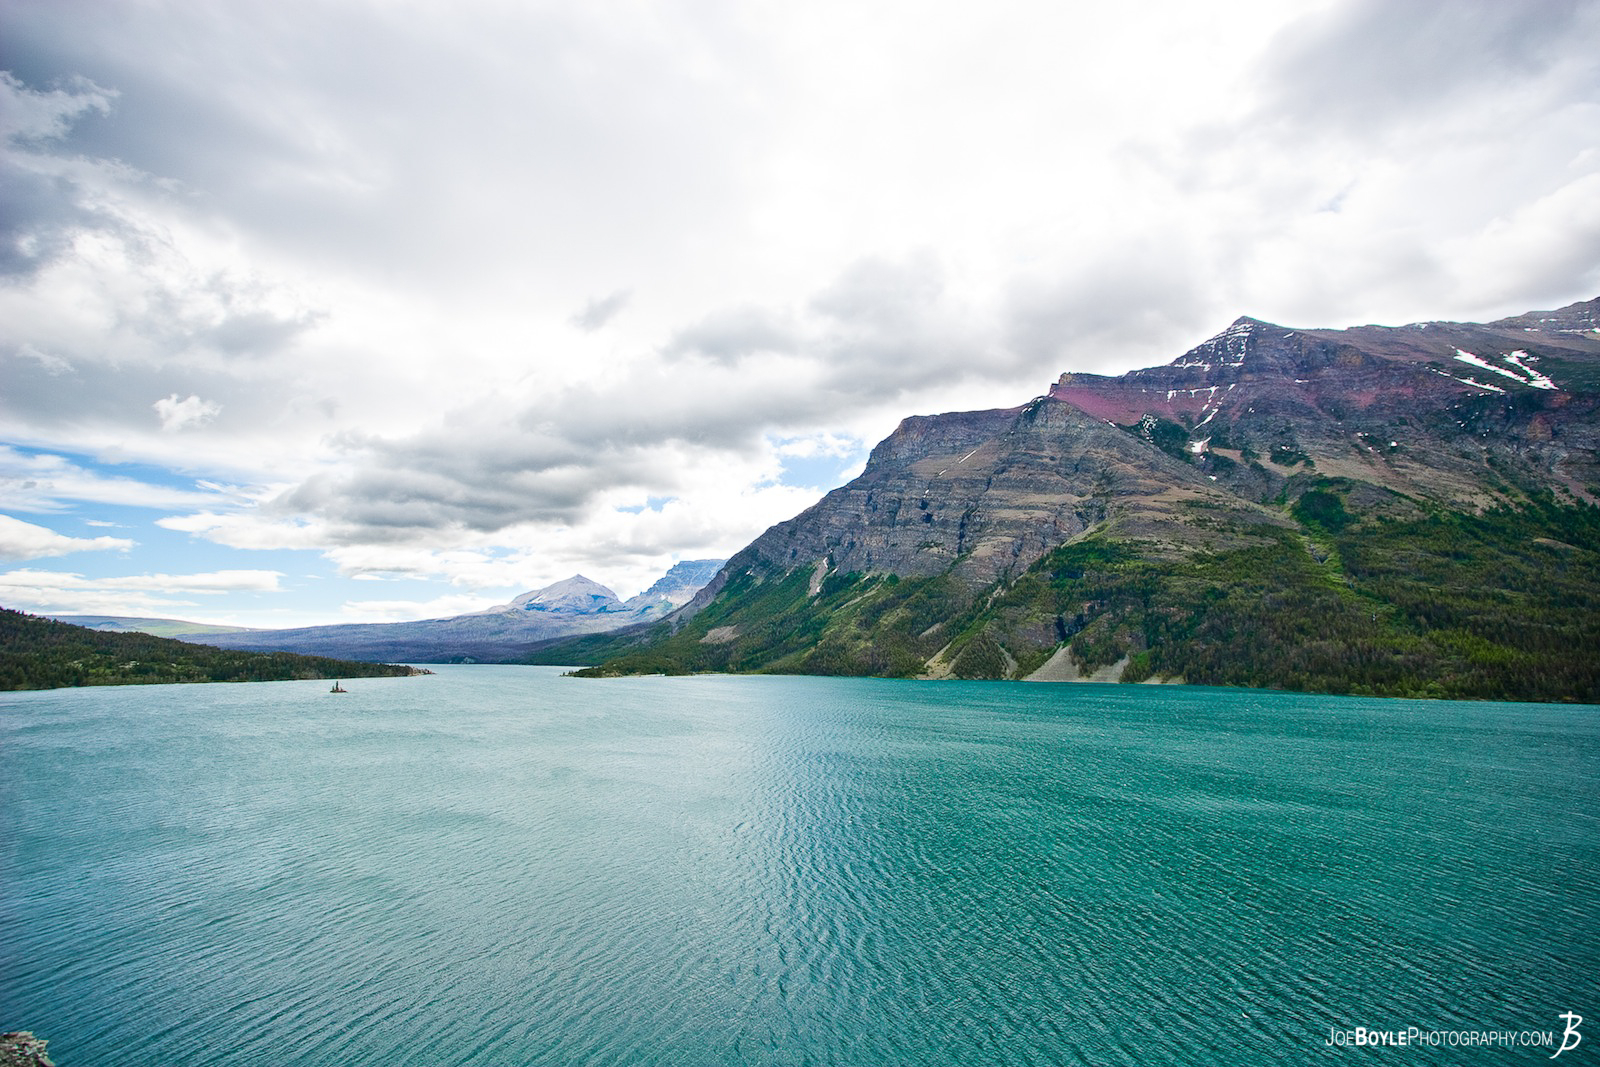 This is one of the first images that I captured on my trip to Glacier National Park (GNP). Beautiful green water, which is a Moraine Lake, with the mountain and clouds as a backdrop provided a very surreal experience!